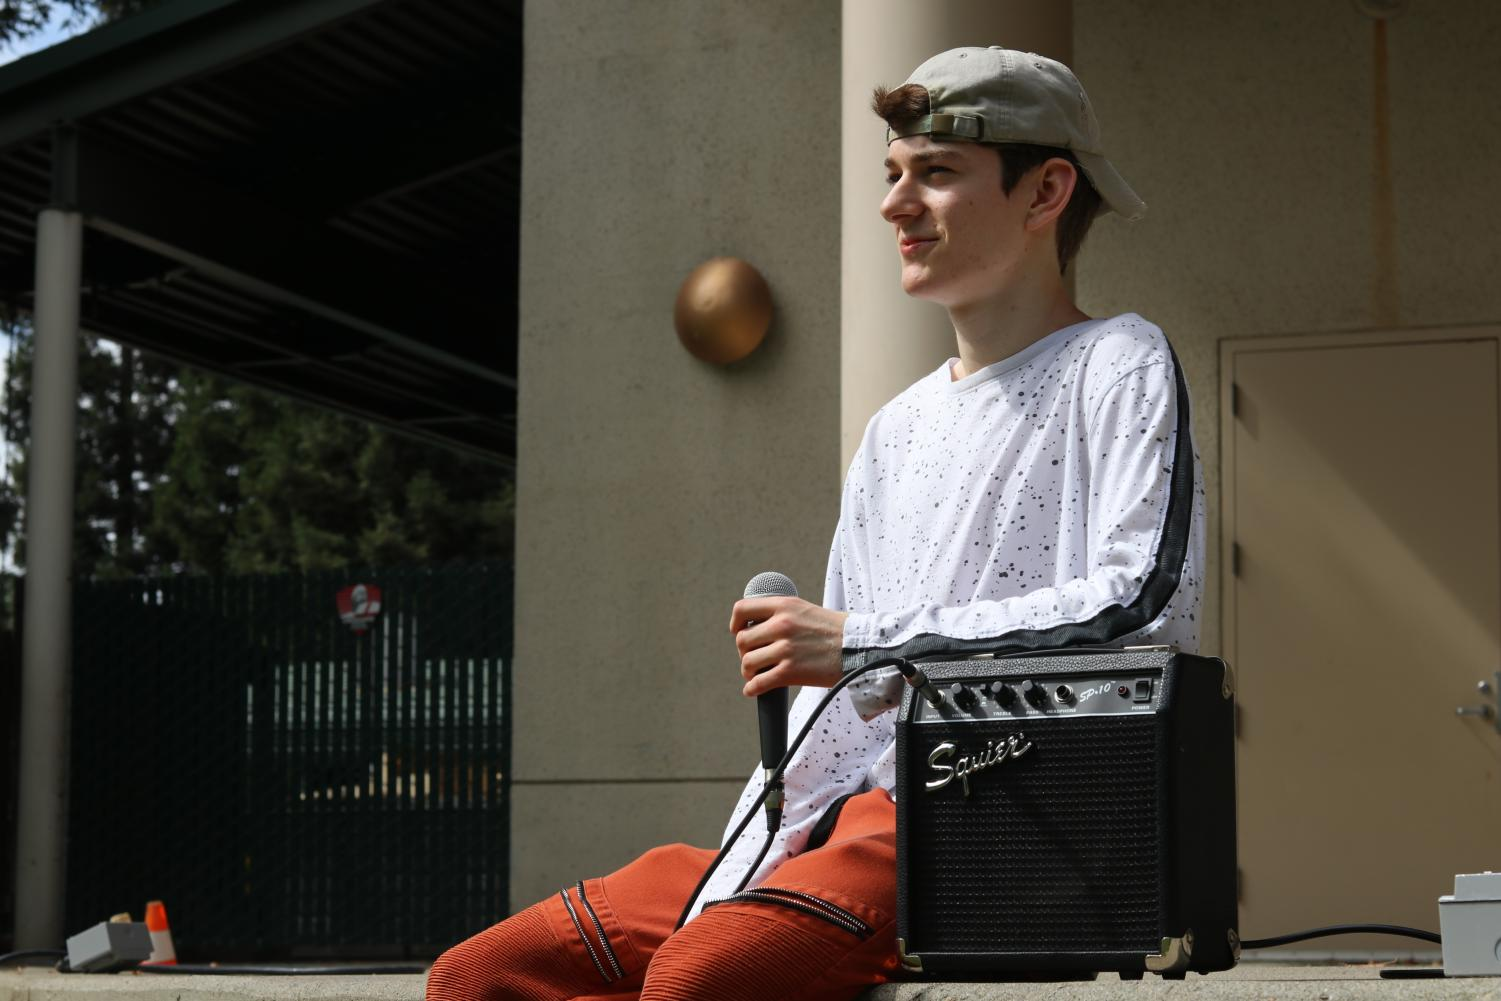 Gavin Willson poses for a photograph on Wednesday, Sept. 19. Willson, a self-taught beatboxer, is one of the top 20 selected to compete in the televised Celebration of Music talent competition at the Crest Theater in Sacramento this Friday.